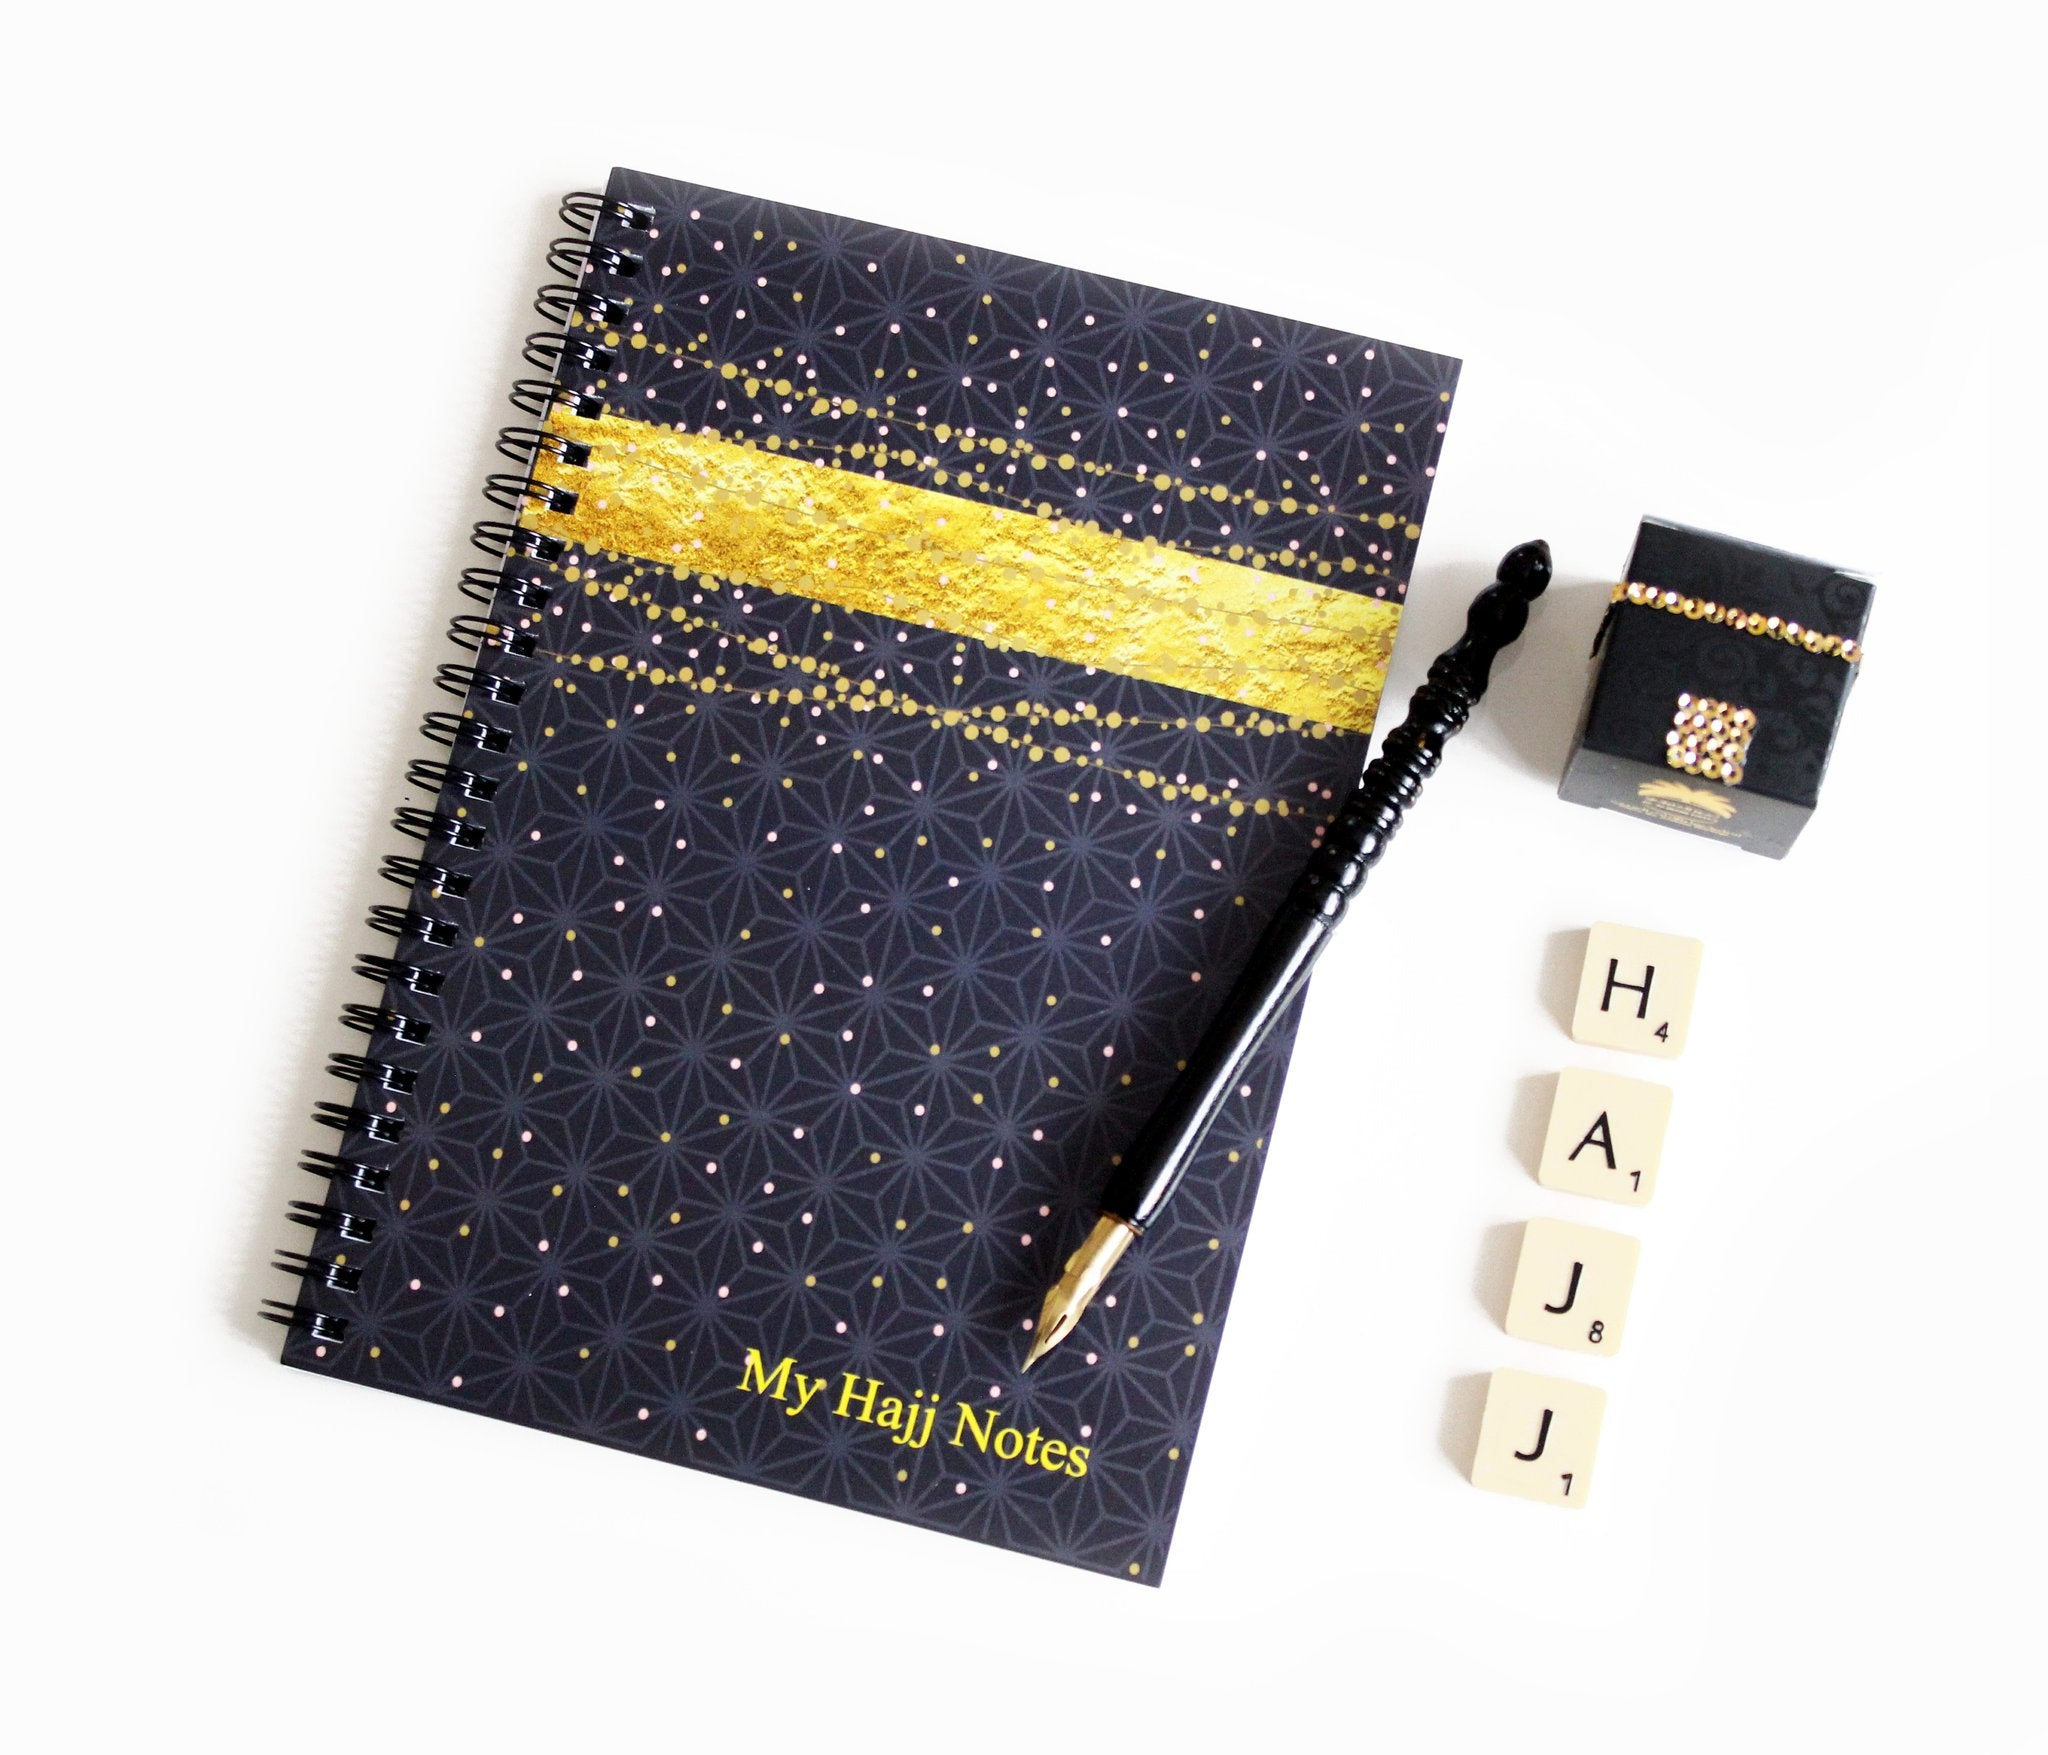 My Hajj Notebook